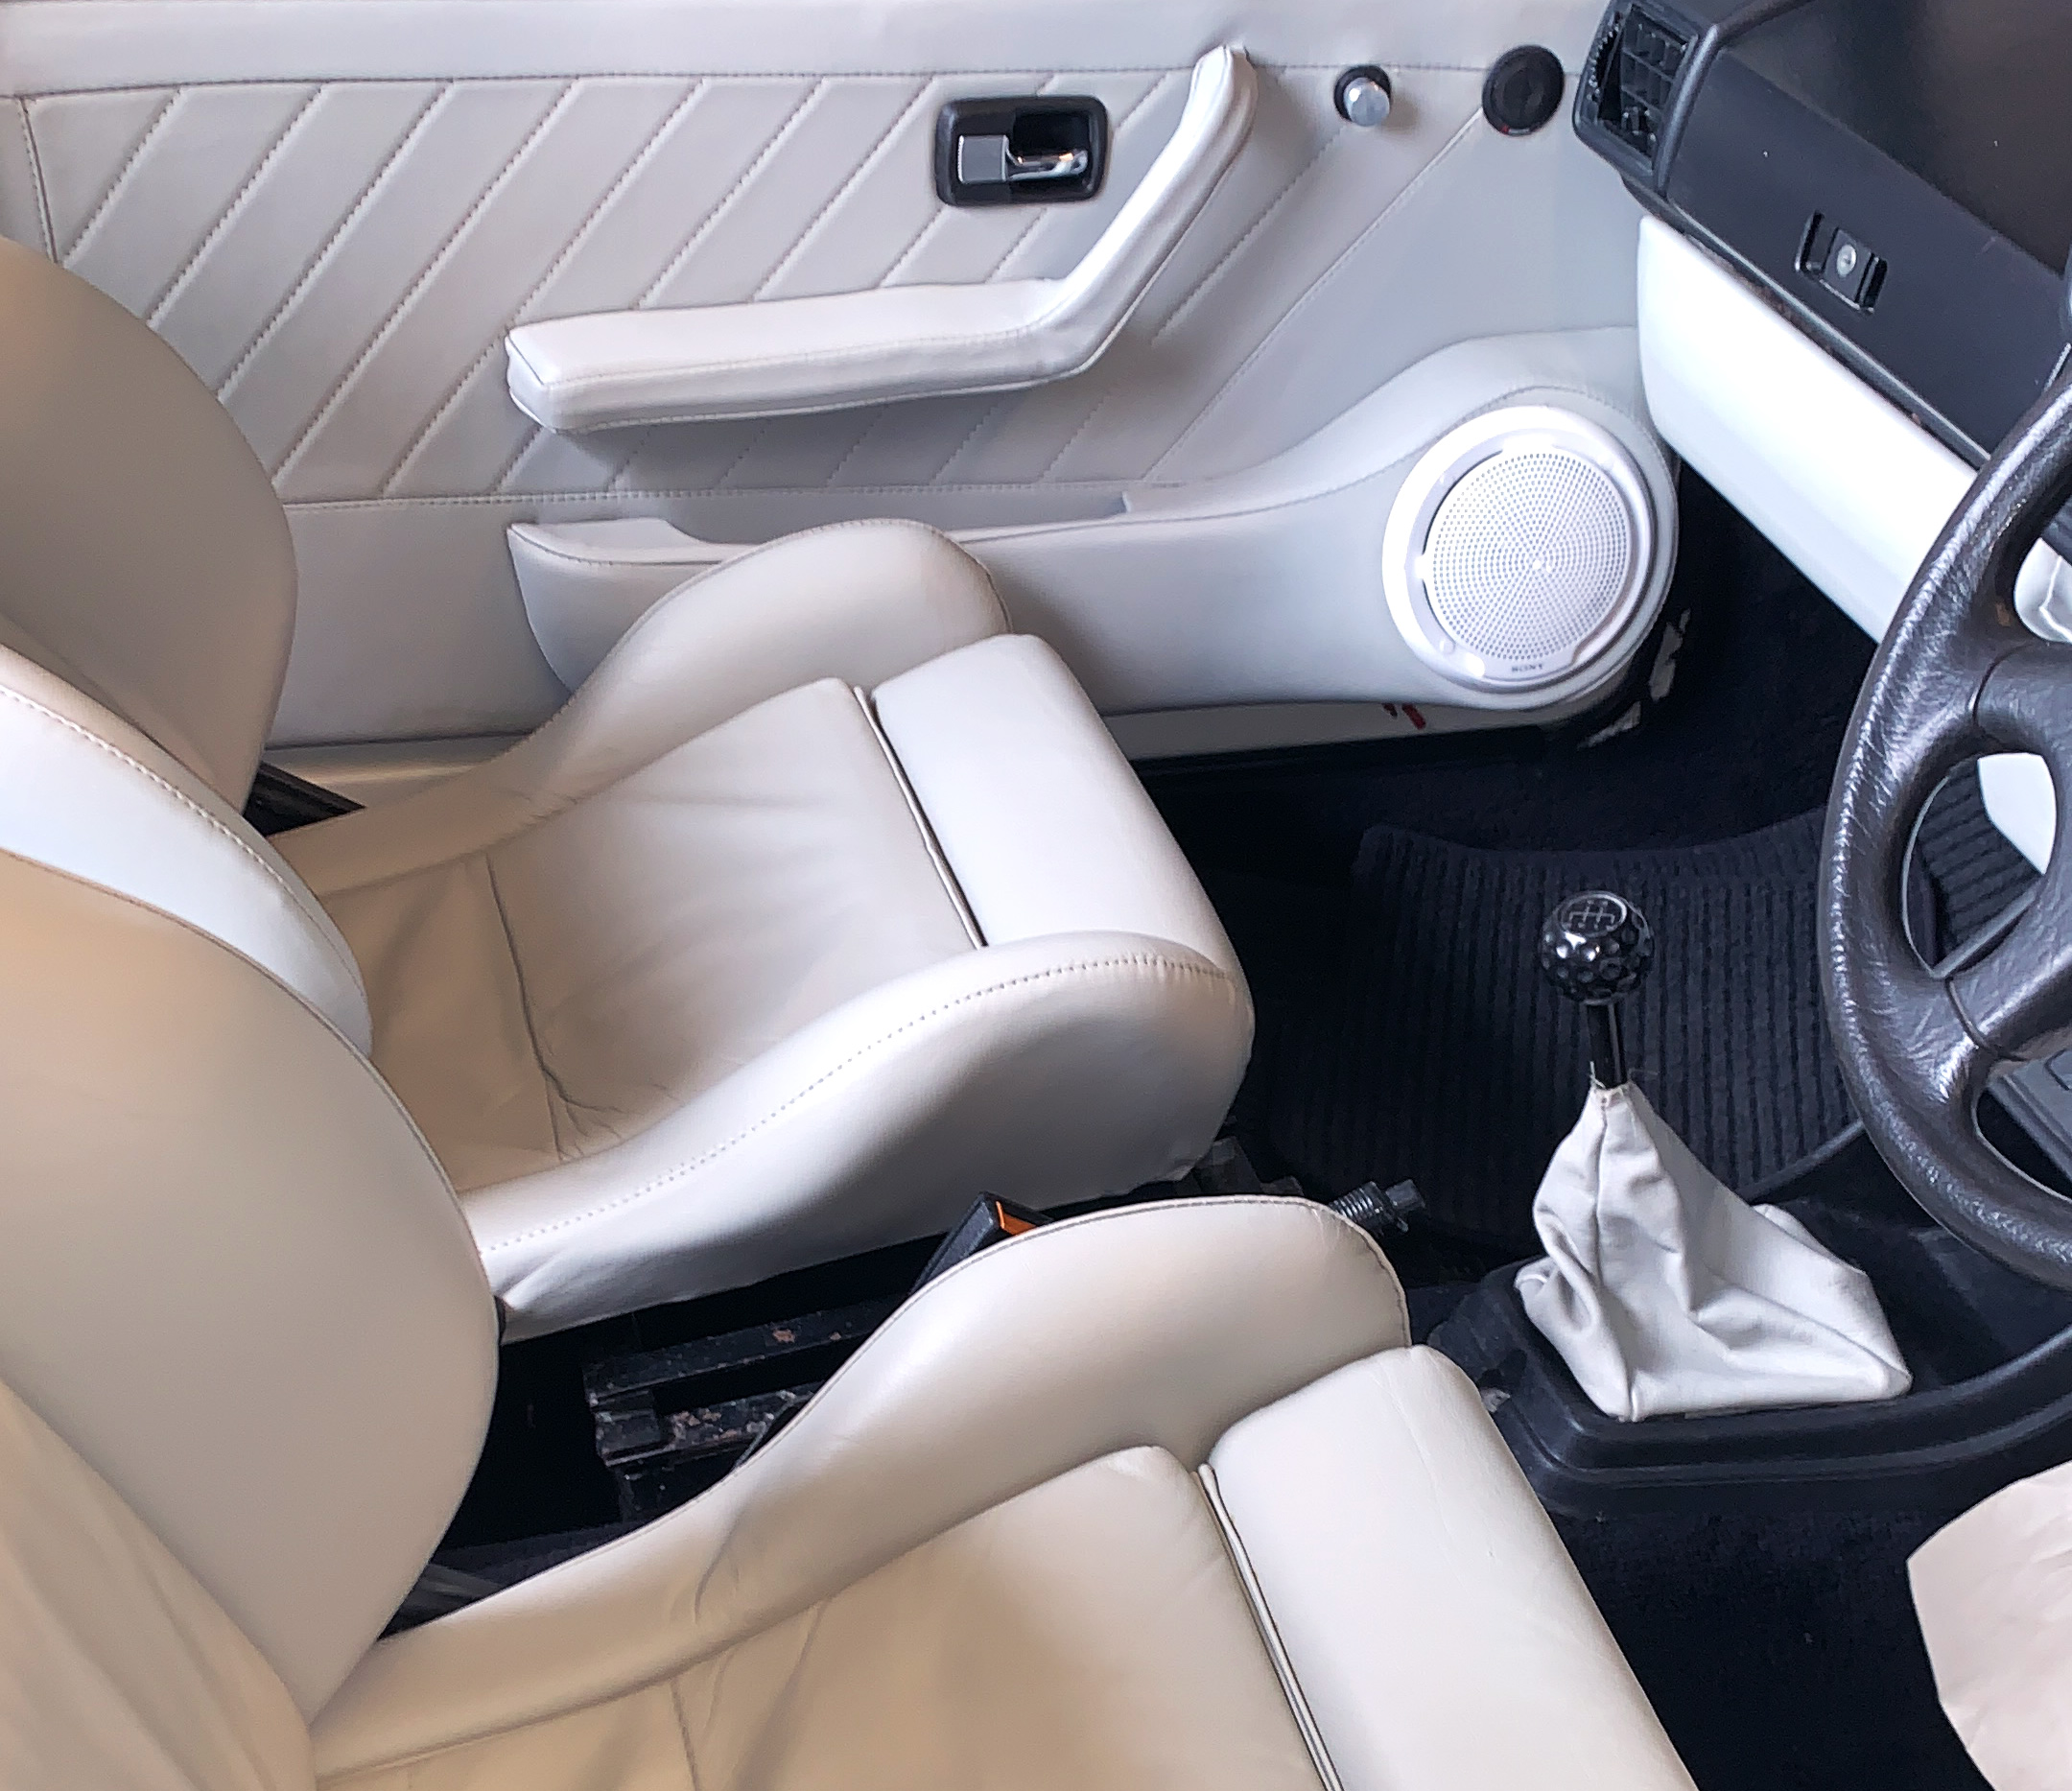 Leather+interior%2C+upholstery%2C+panels+and+detail